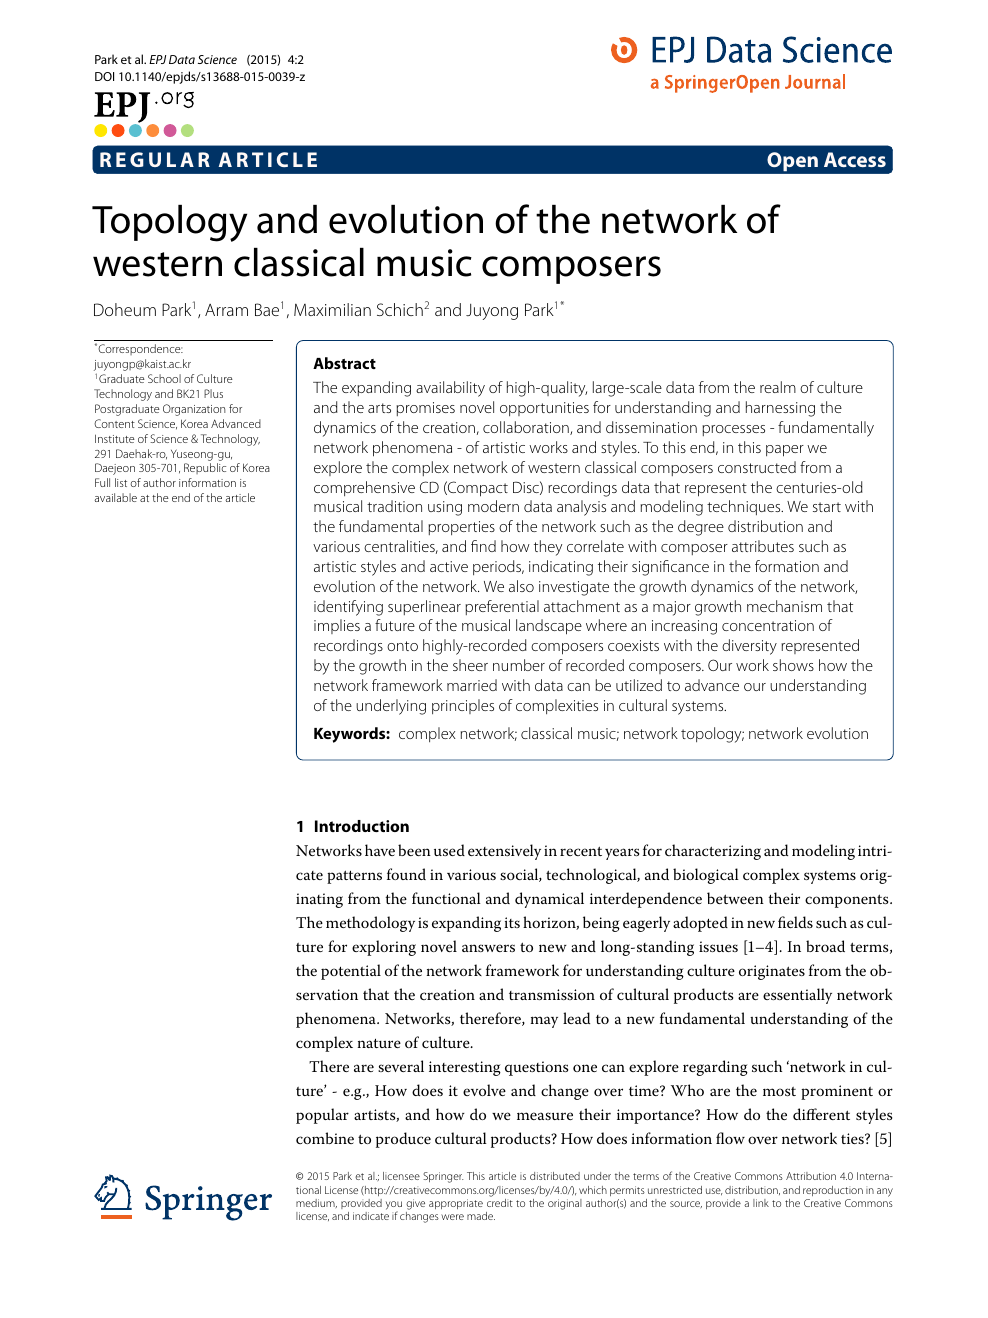 Topology and evolution of the network of western classical music